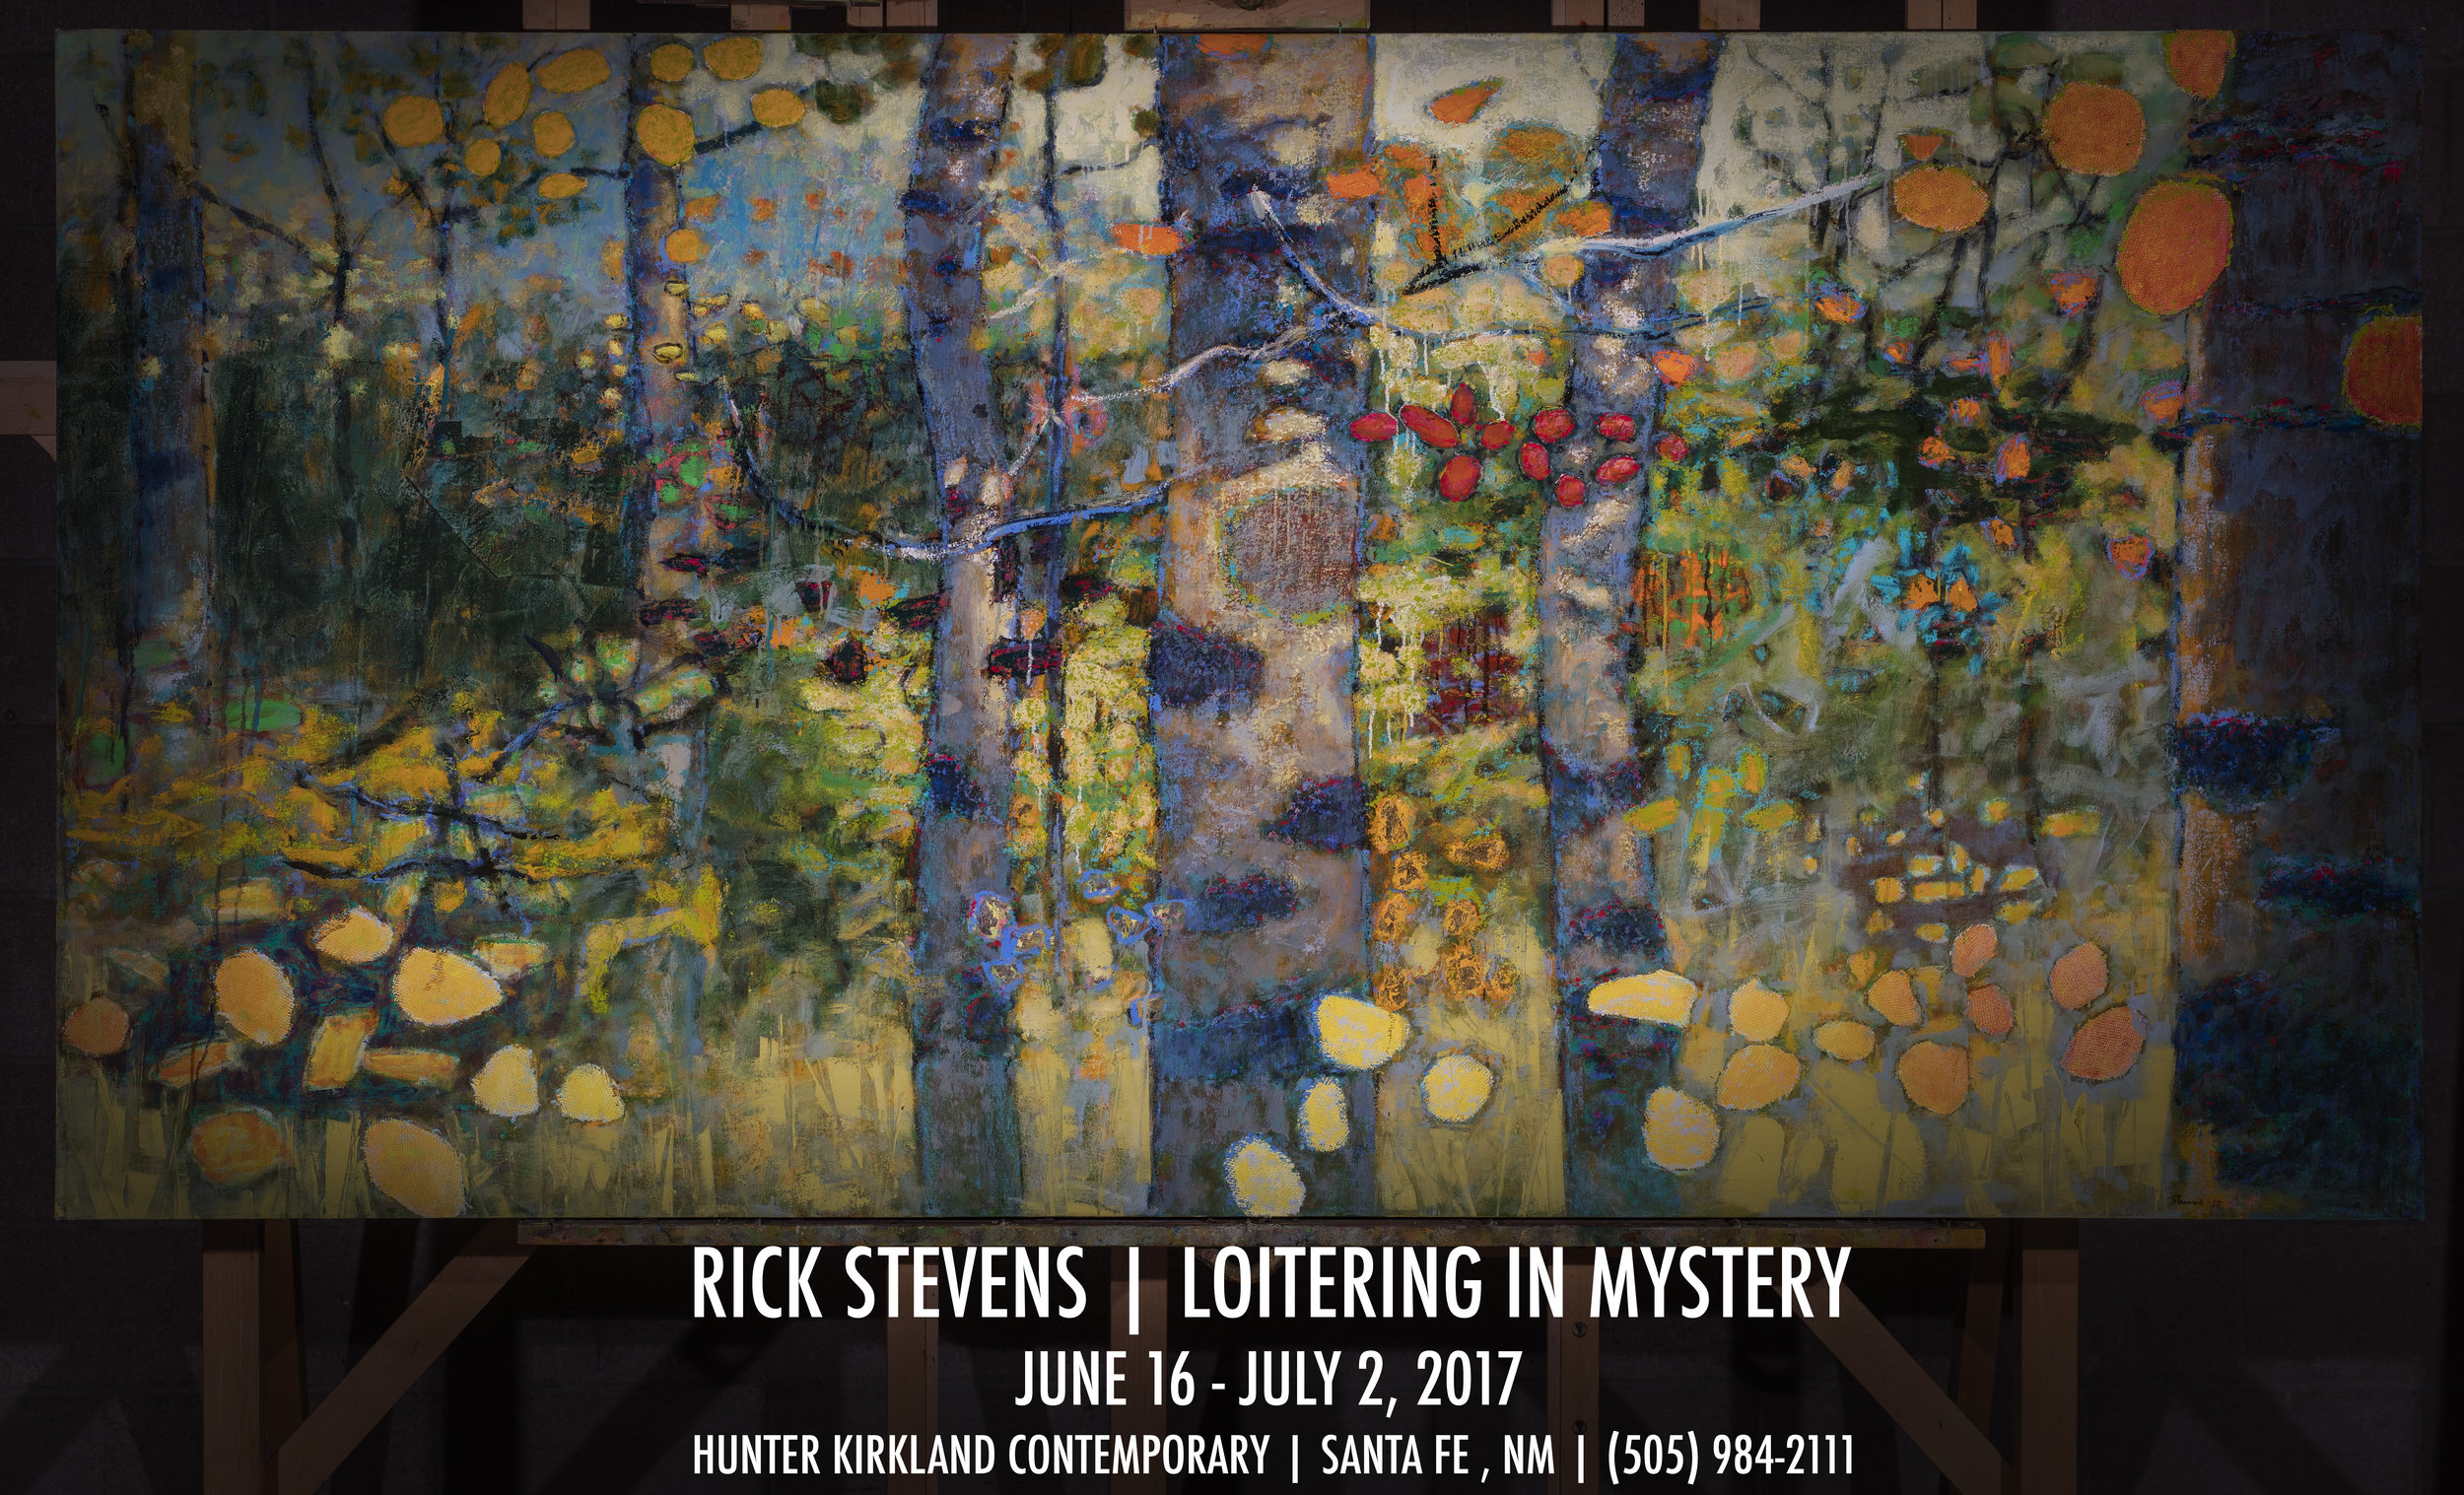 Rick's first solo exhibition of 2017 will be at Hunter Kirkland Contemporary in Santa Fe, opening June 16th.